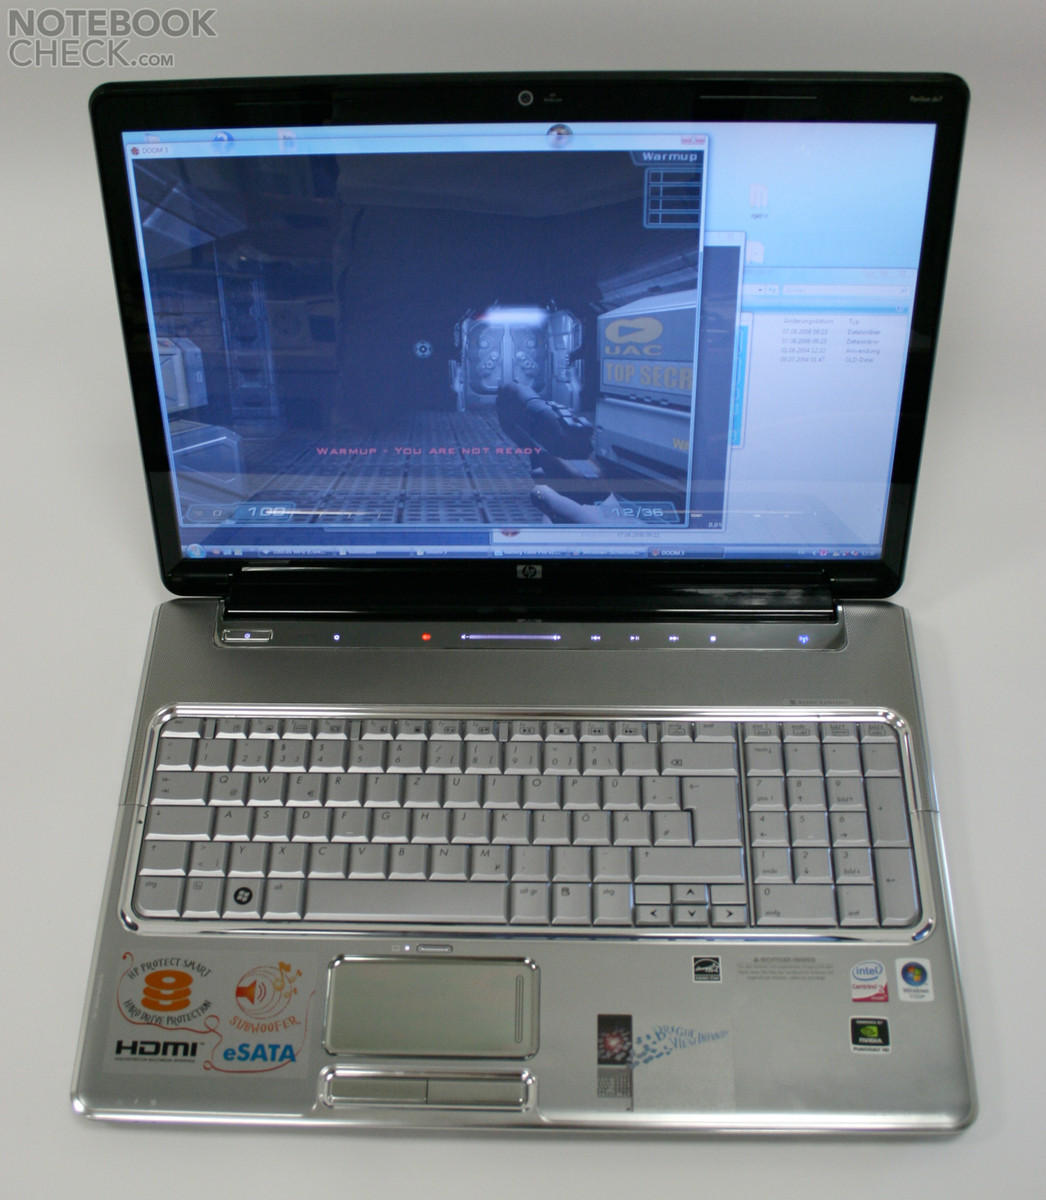 HP Pavilion dv7t-1200 Notebook IDT HD Audio Drivers PC